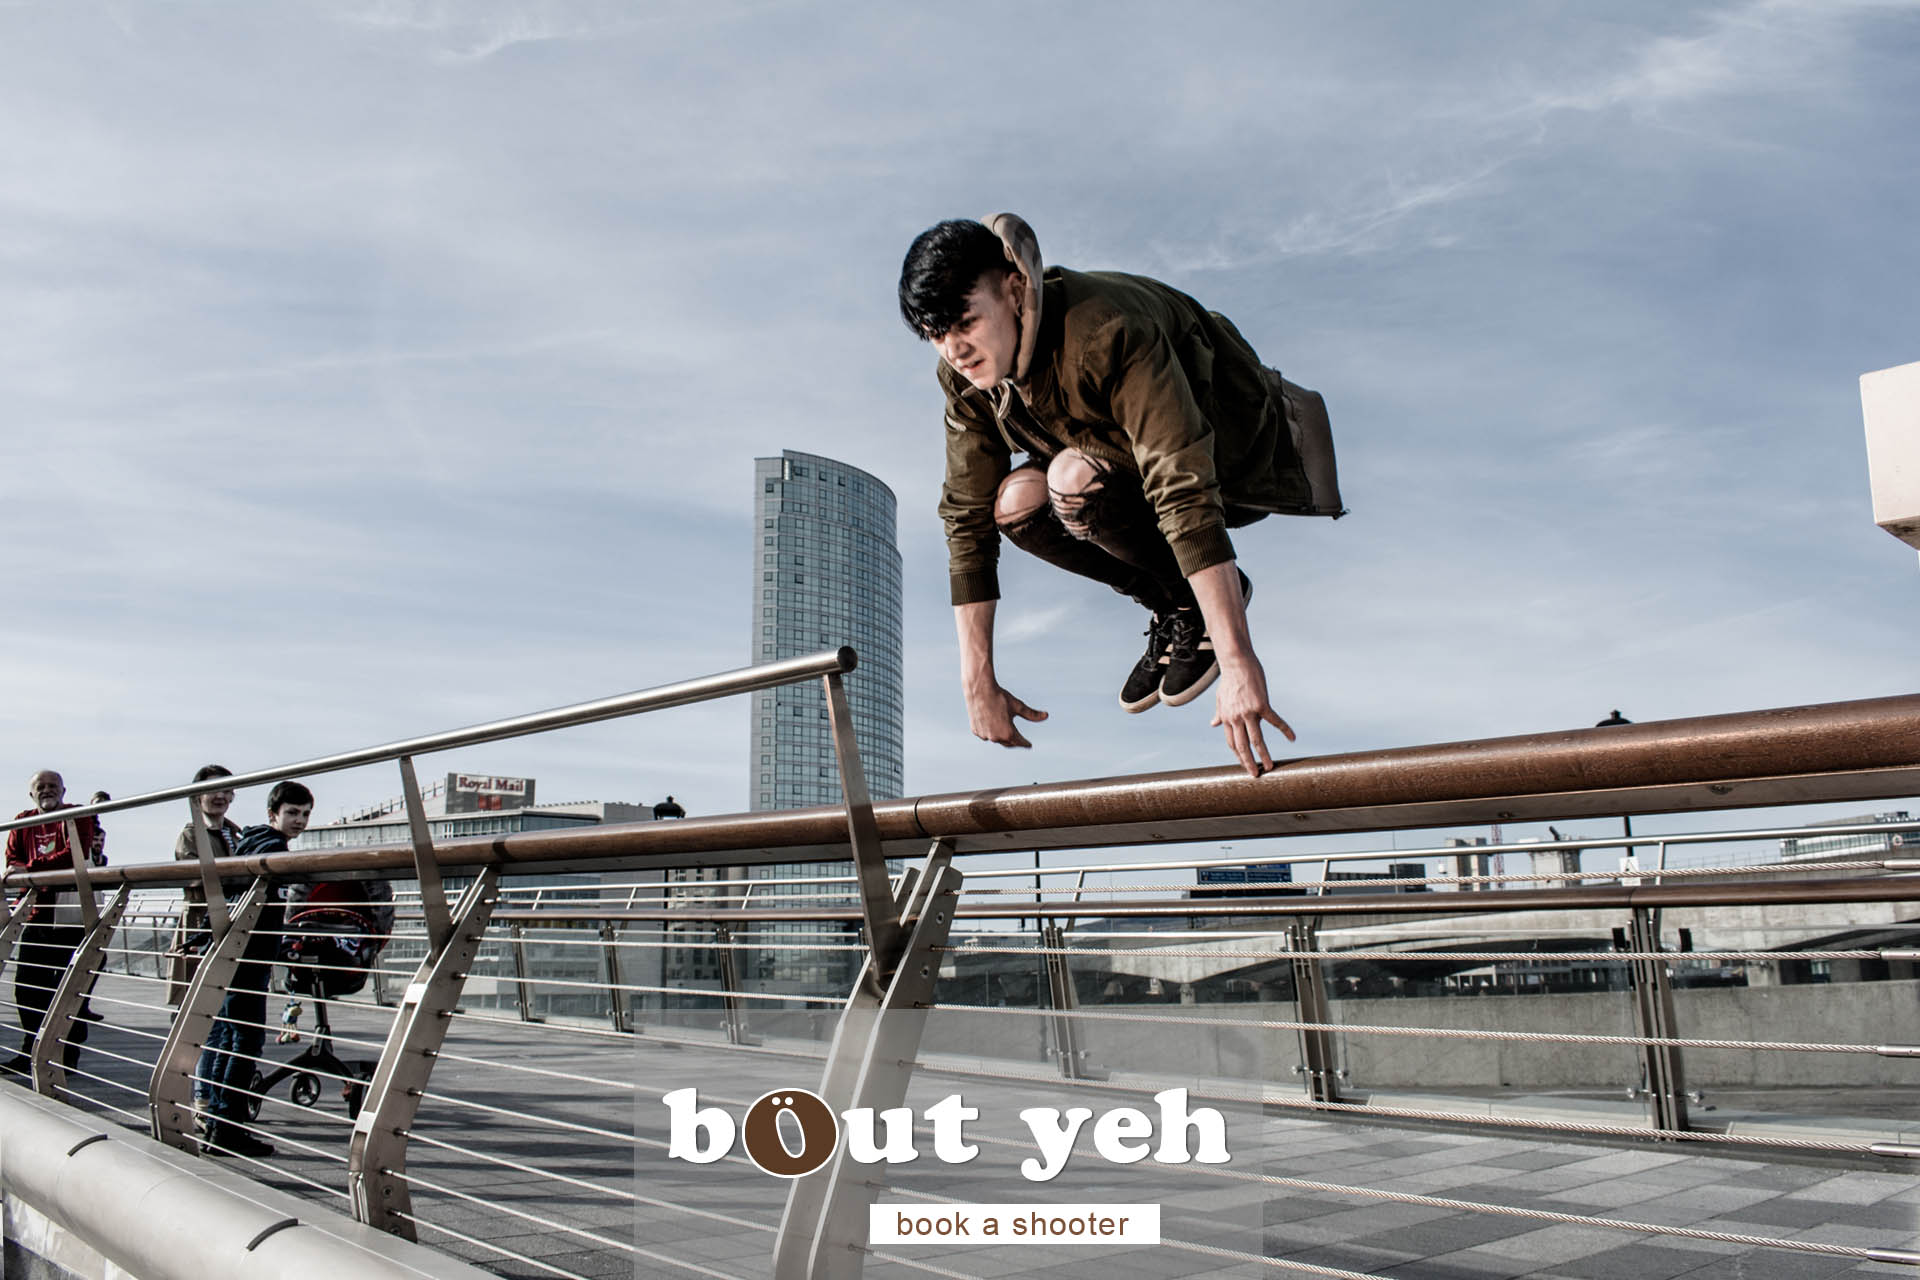 Owen doing Parkour training, Lagan Weir Bridge, Belfast - photo 5011 including call to action.